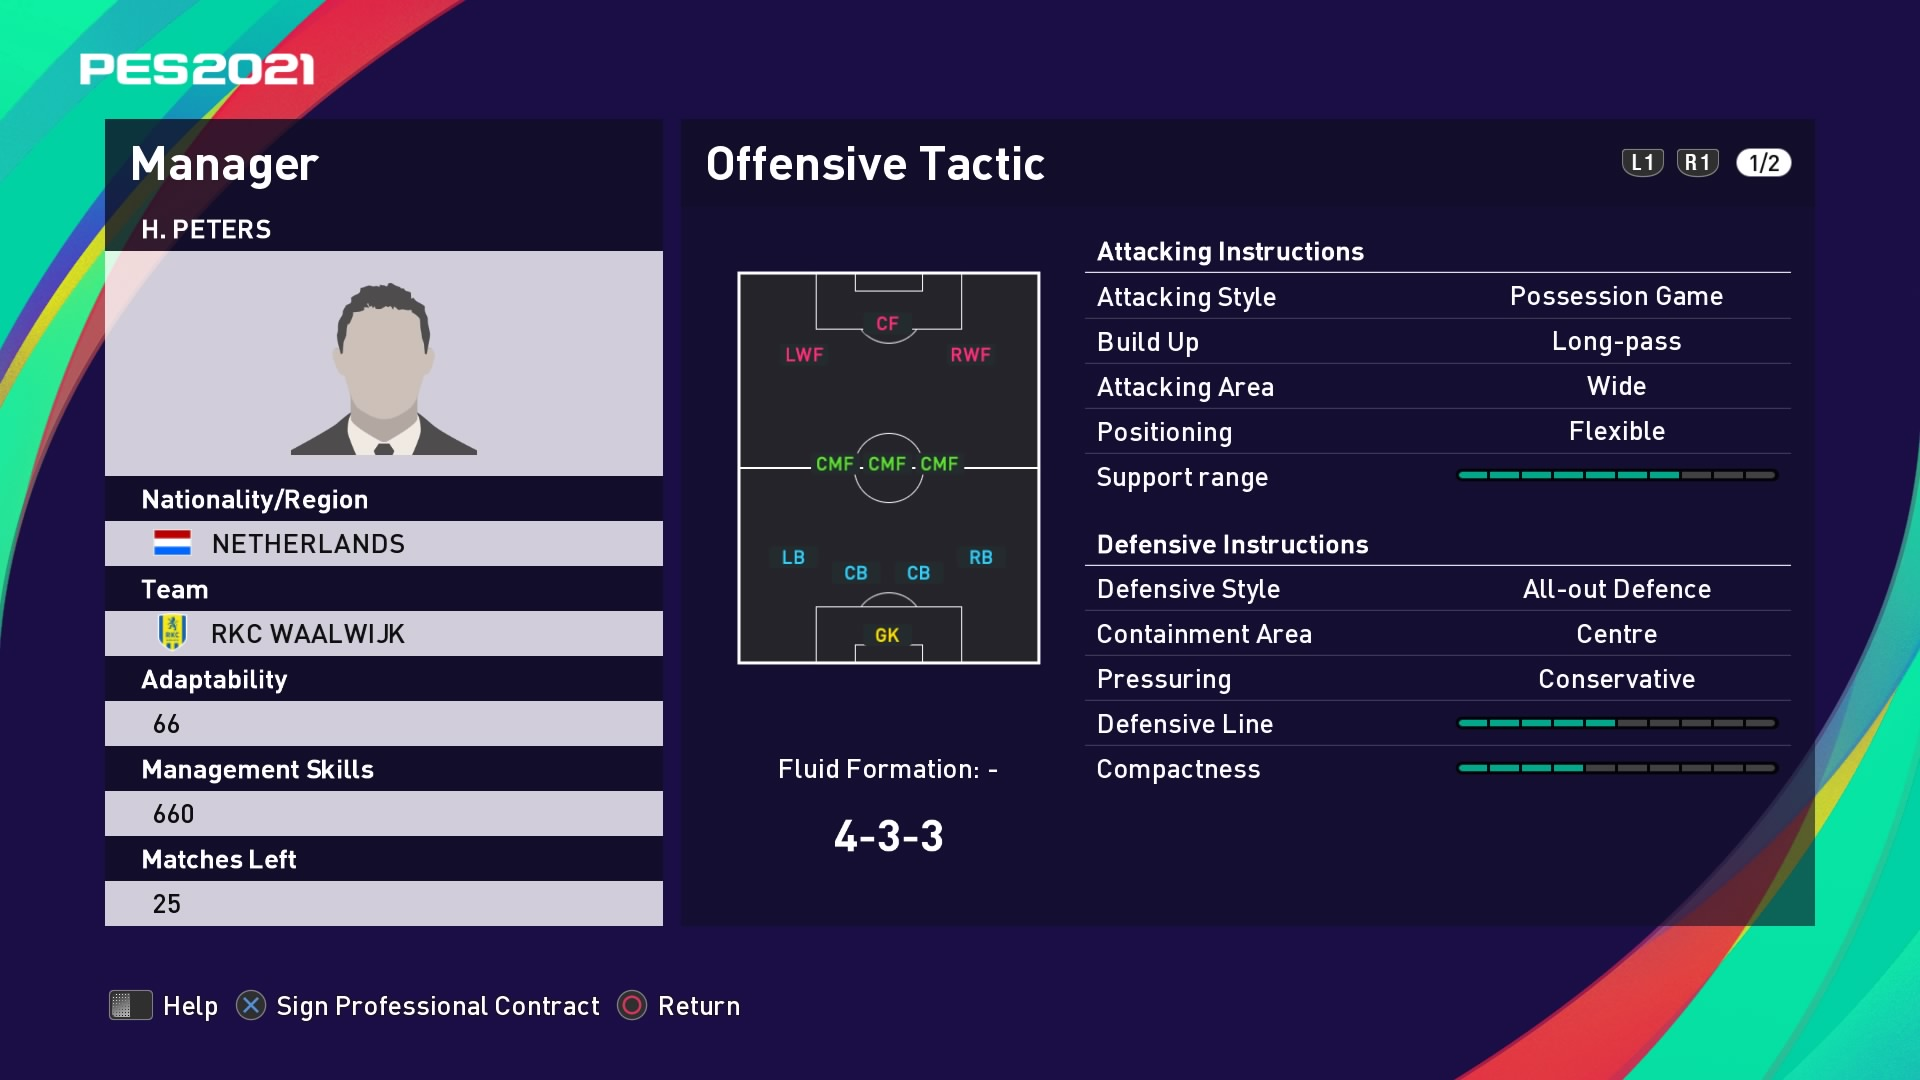 H. Peters (Fred Grim) Offensive Tactic in PES 2021 myClub